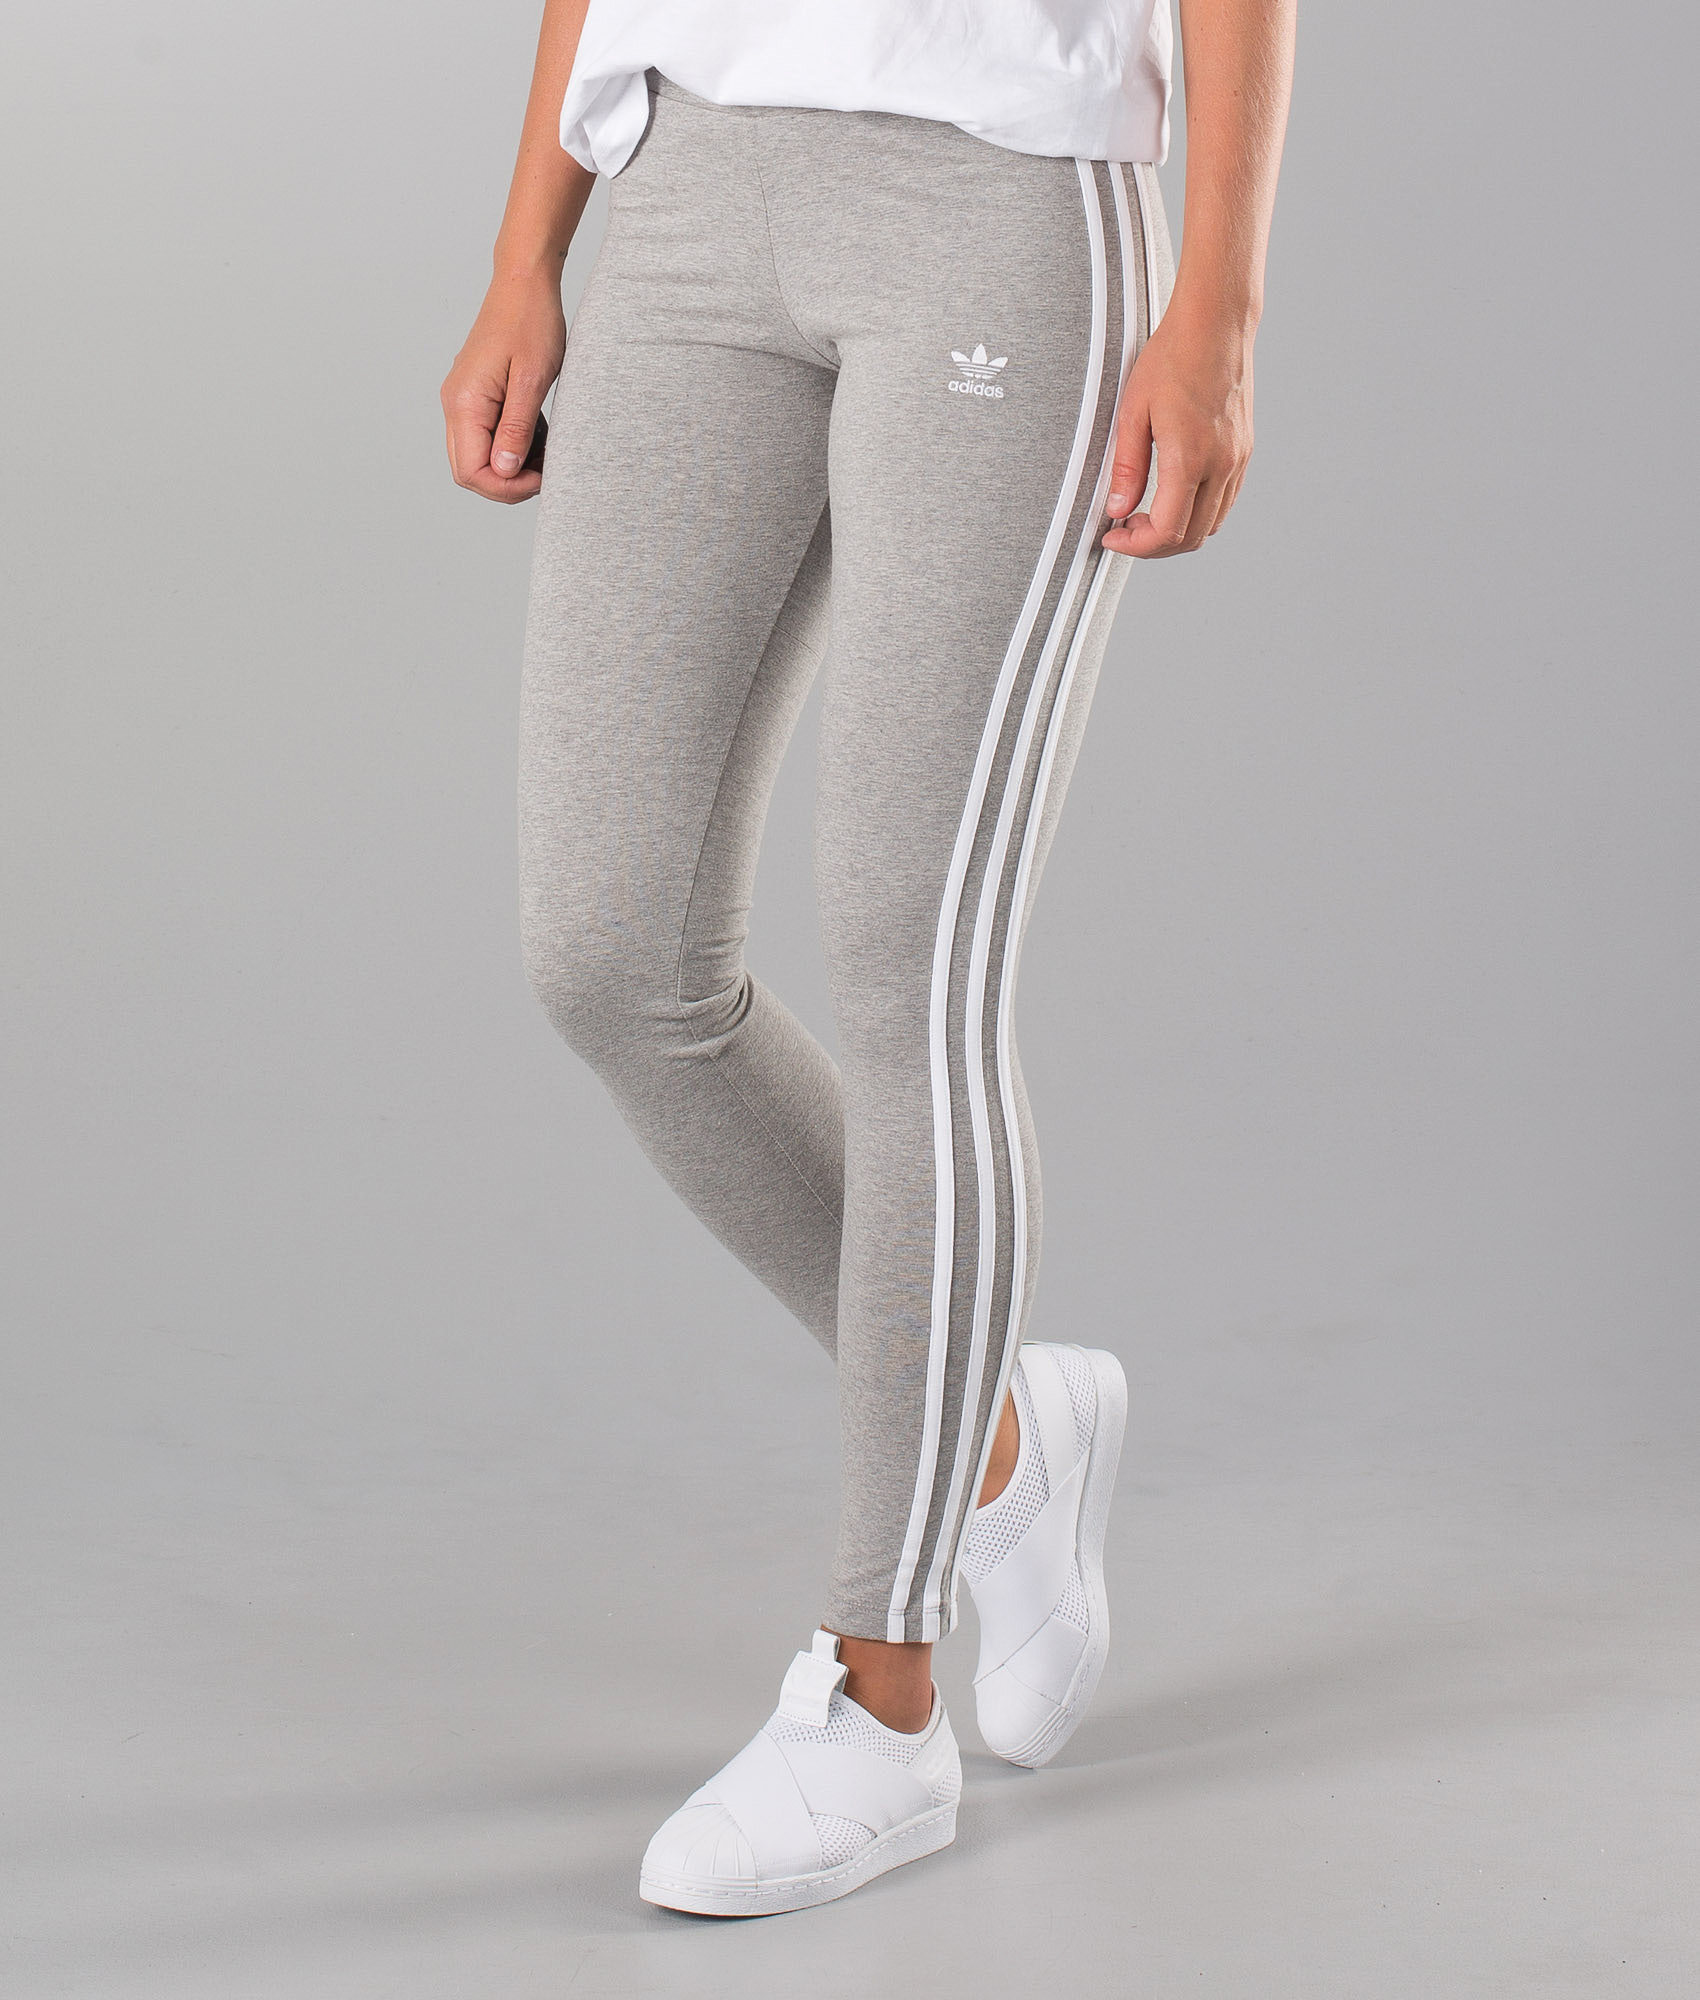 a83c69a094fa9e Adidas Originals 3 Stripes Leggings Medium Grey Heather - Ridestore.com